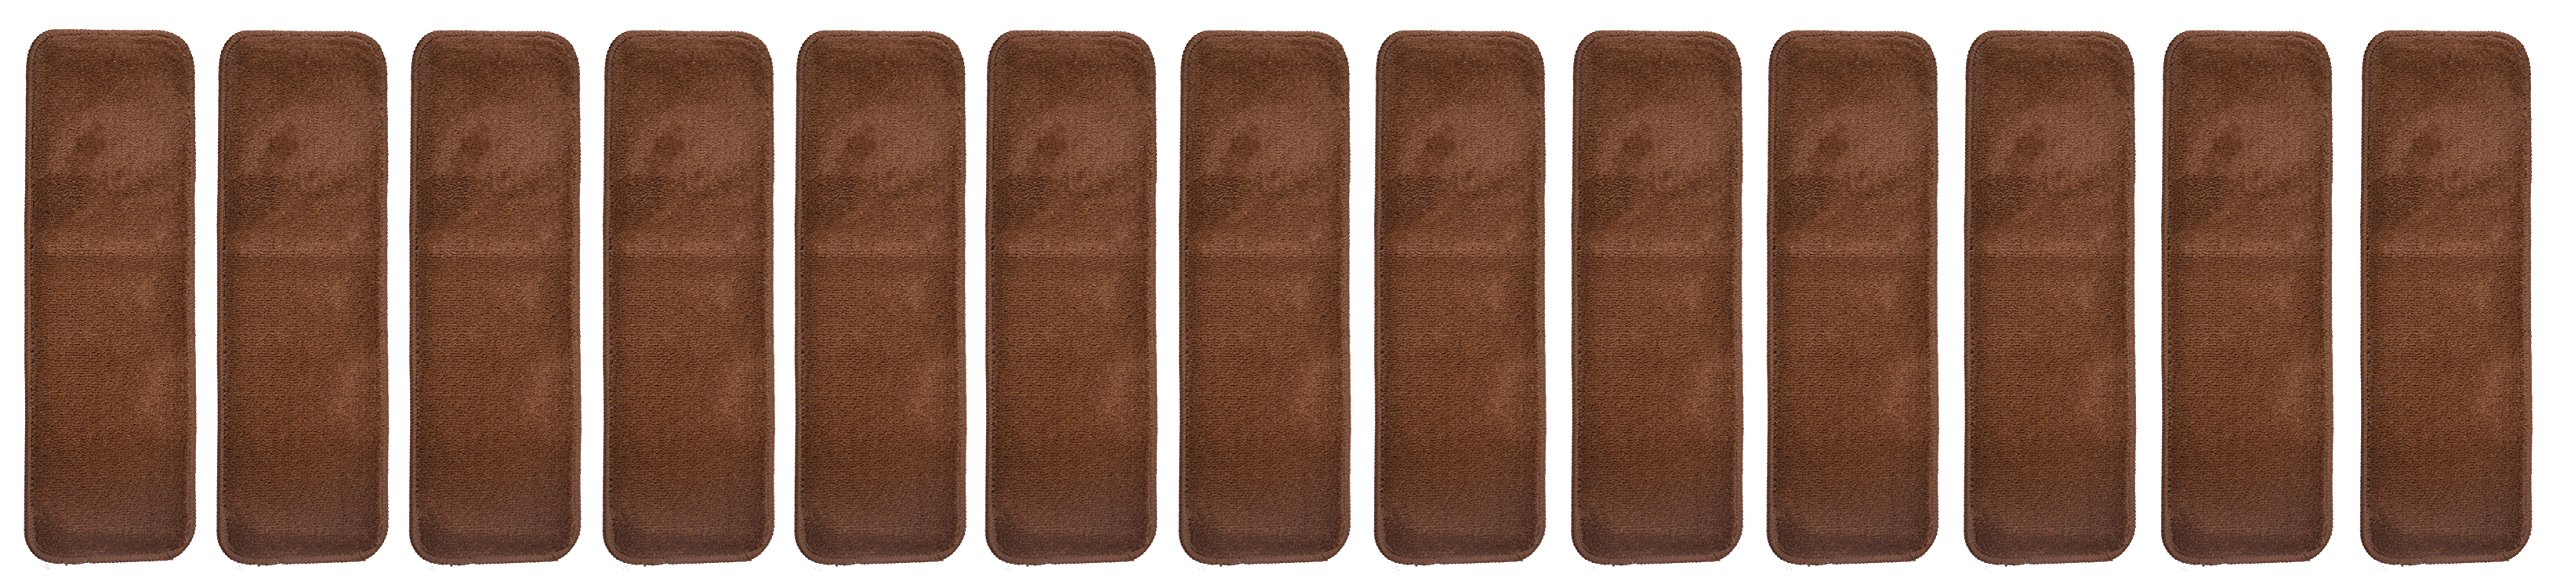 Aris Collection Stair Tread Treads Indoor 8½ inch x 26½ inch Machine Washable Skid Slip Resistant Carpet Stair Tread Treads (Set of 13, Brown)